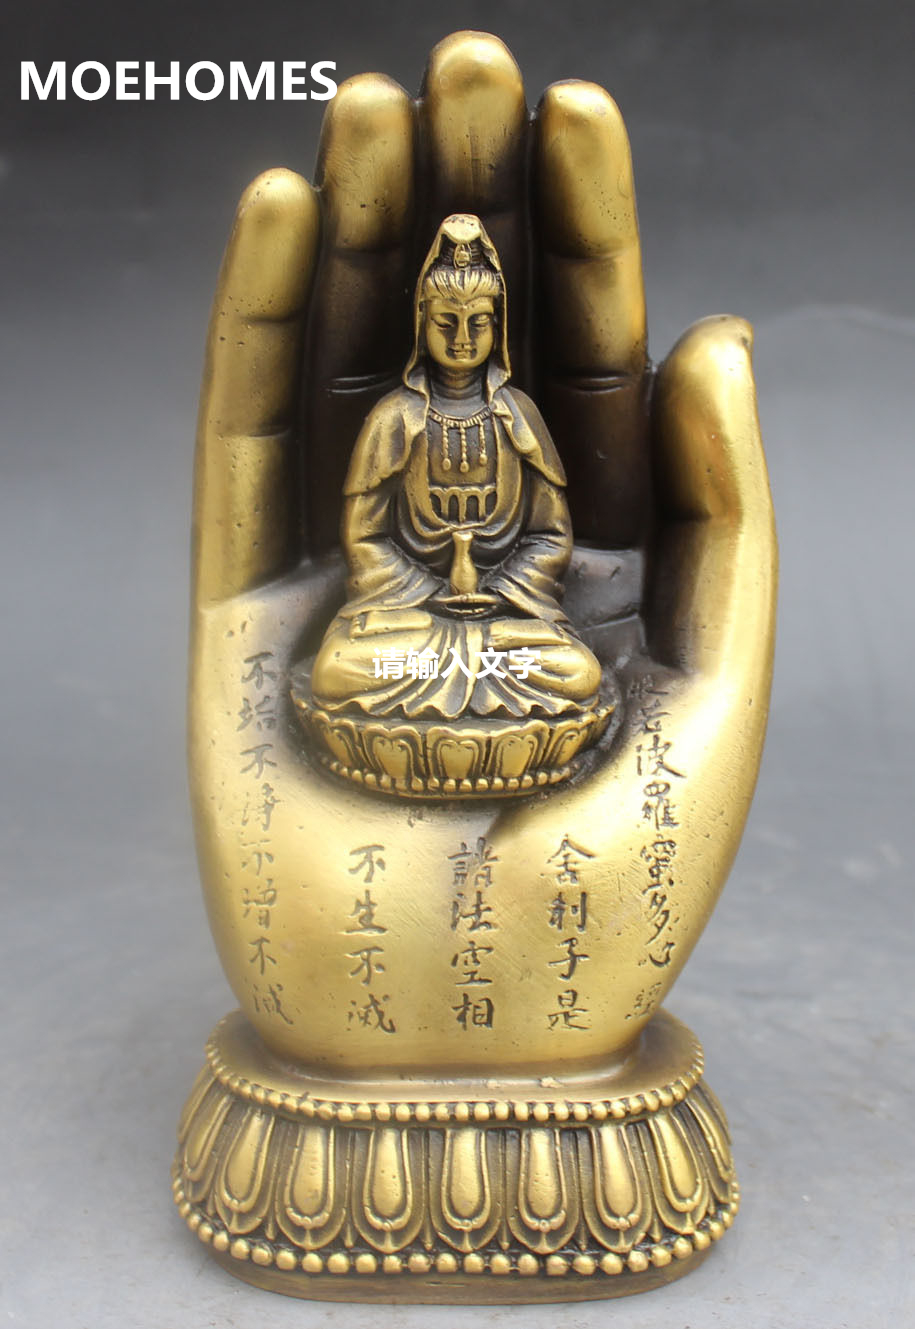 Aliexpress.com : Buy MOEHOMES Chinese Buddhism copper Kwan